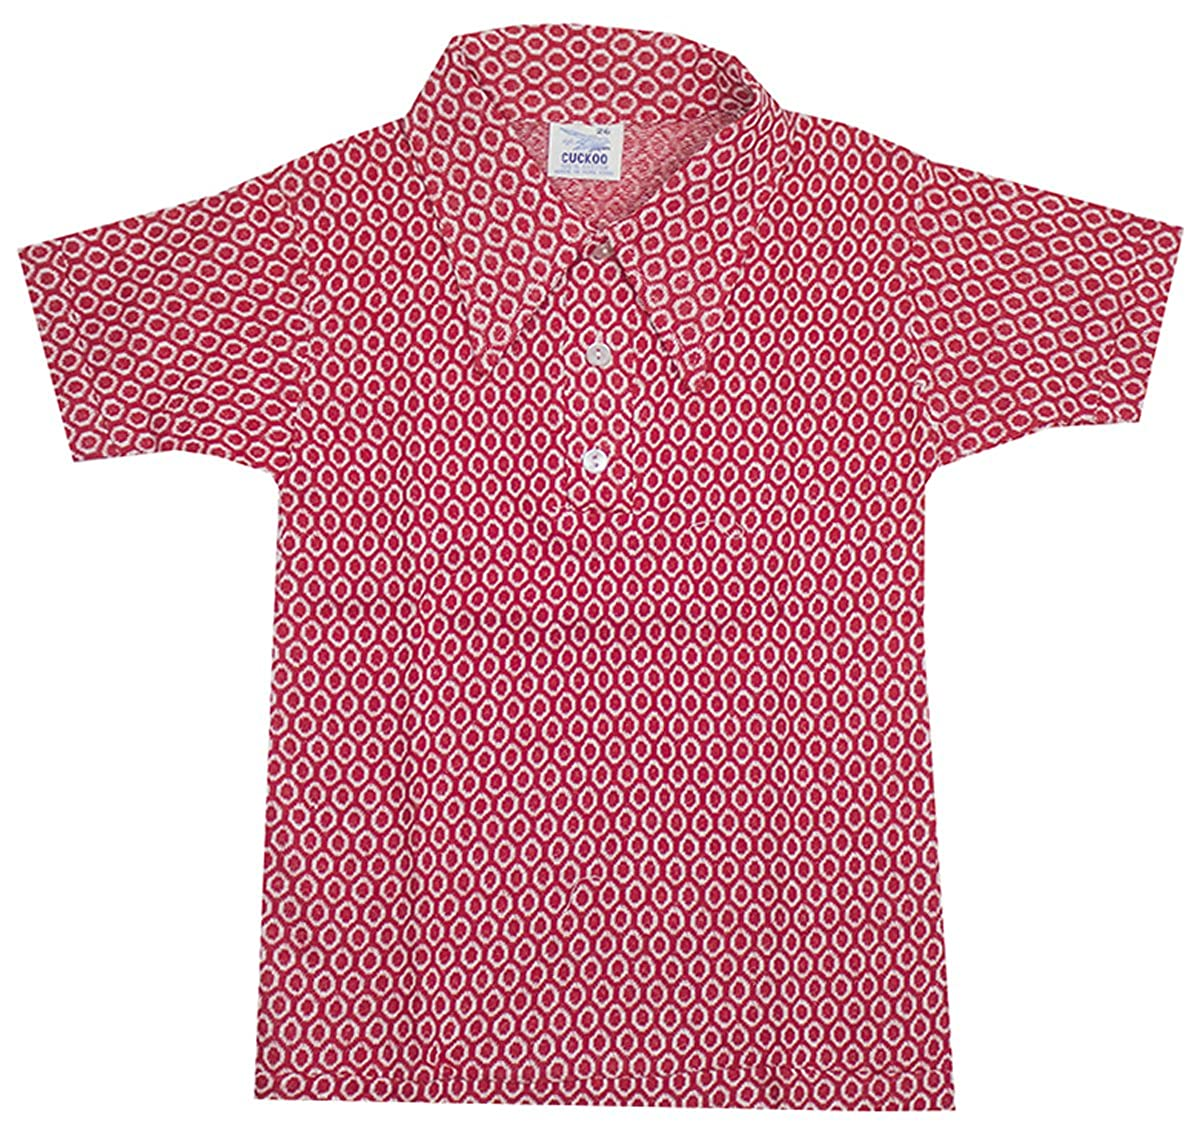 Boys Vintage Geometric Knit Pointy Collar Polo Shirt T-Shirt Top Sizes from 5 to 12 Years